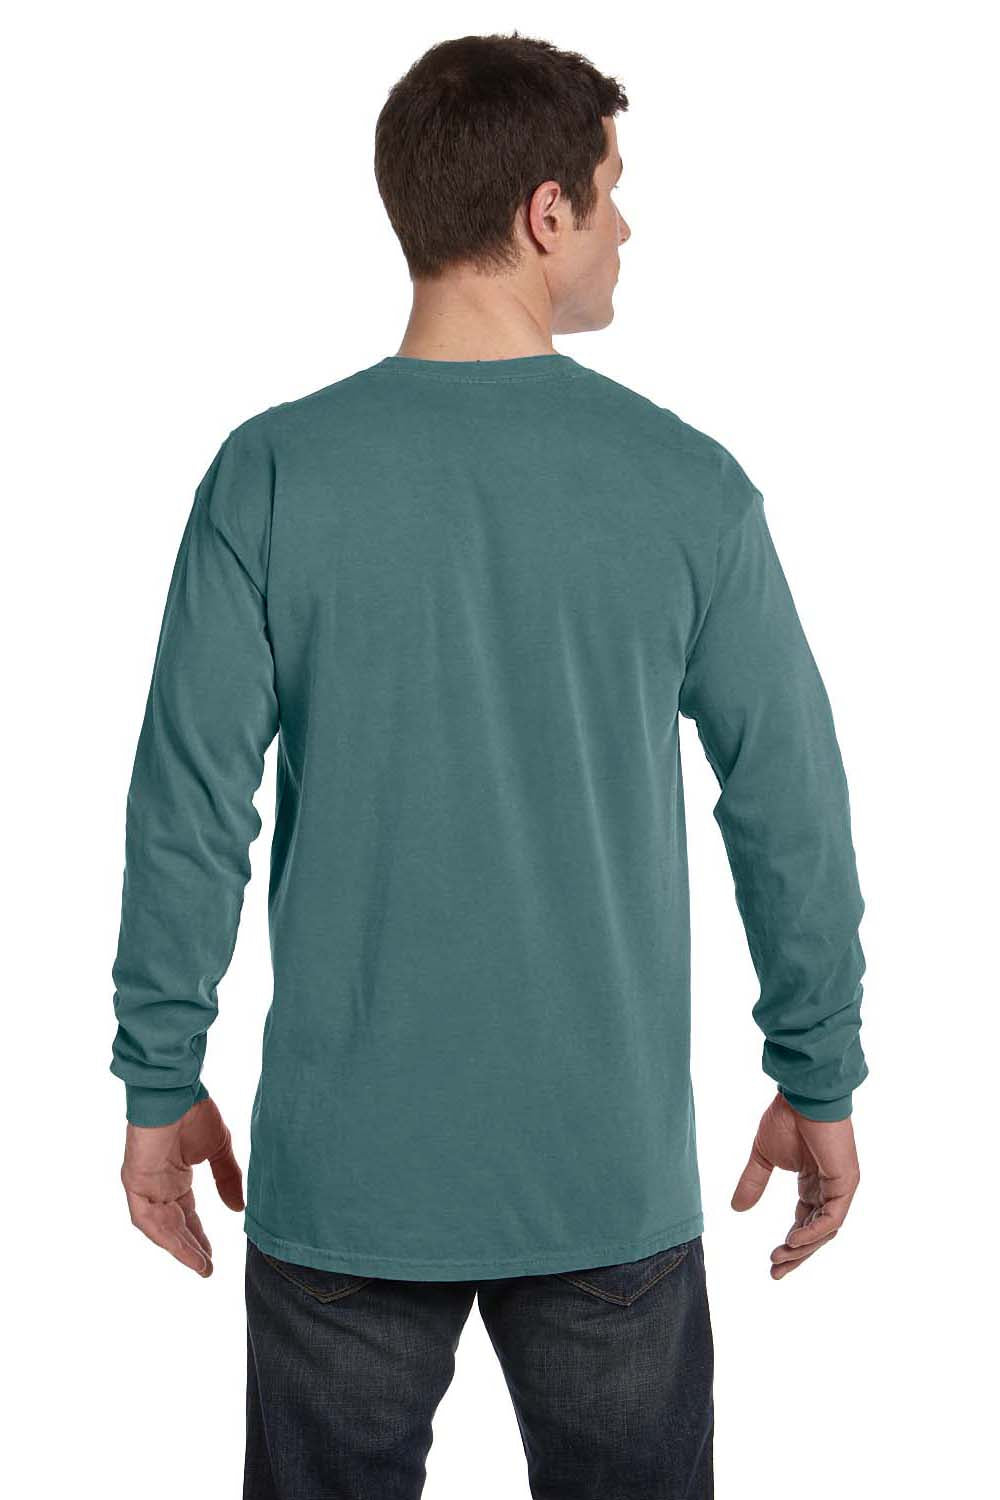 Comfort Colors C6014 Mens Long Sleeve Crewneck T-Shirt Blue Spruce Back